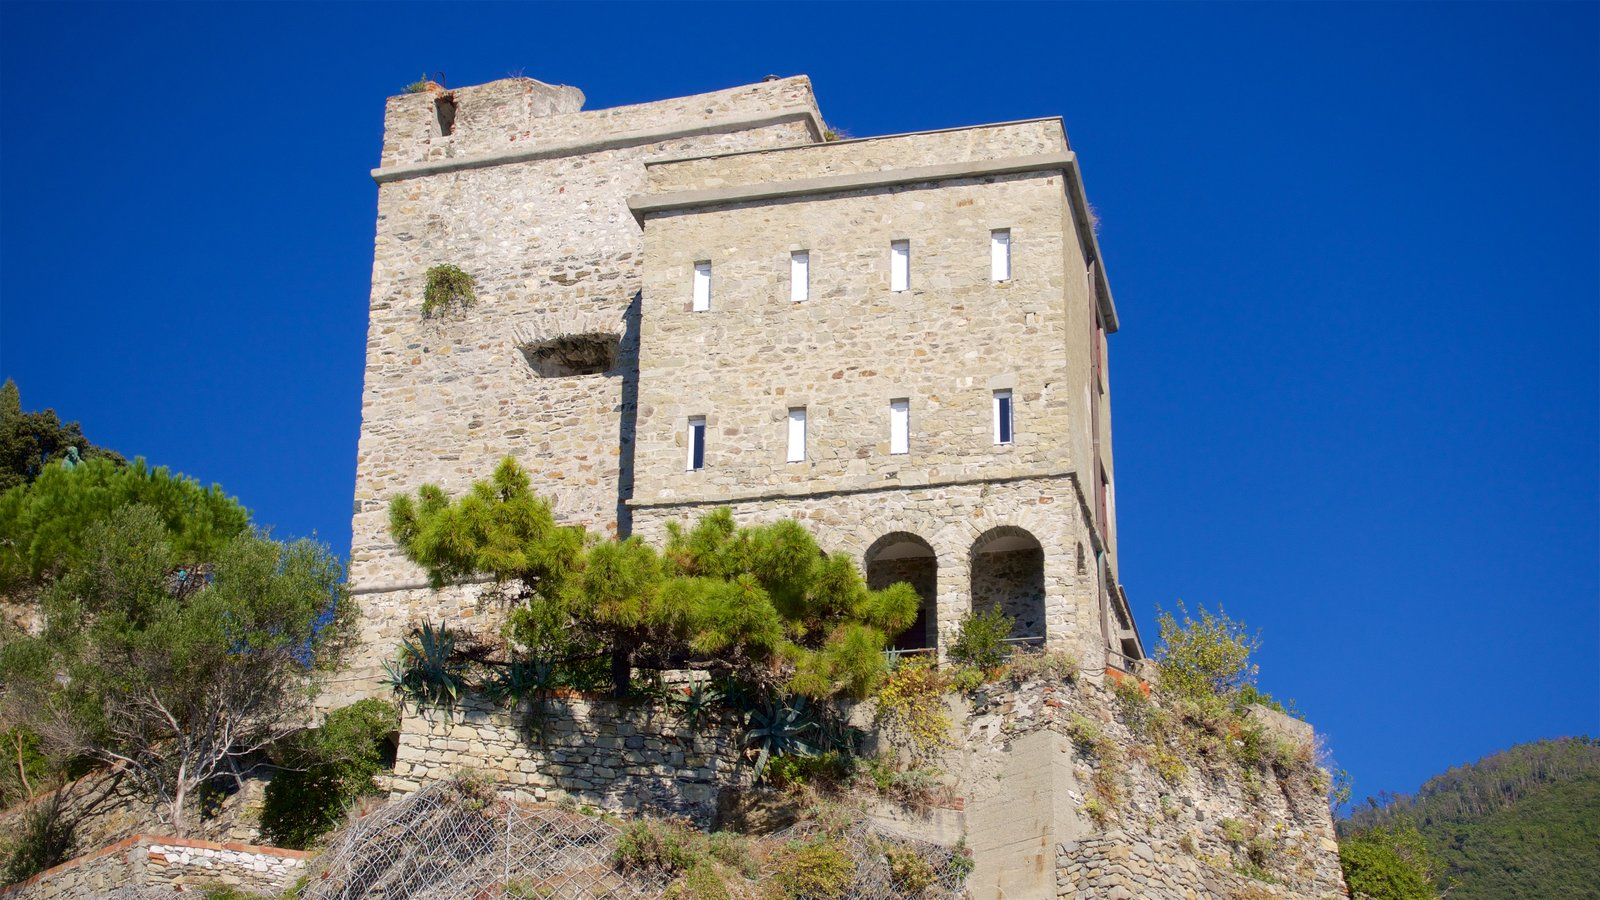 Monterosso al Mare which includes chateau or palace